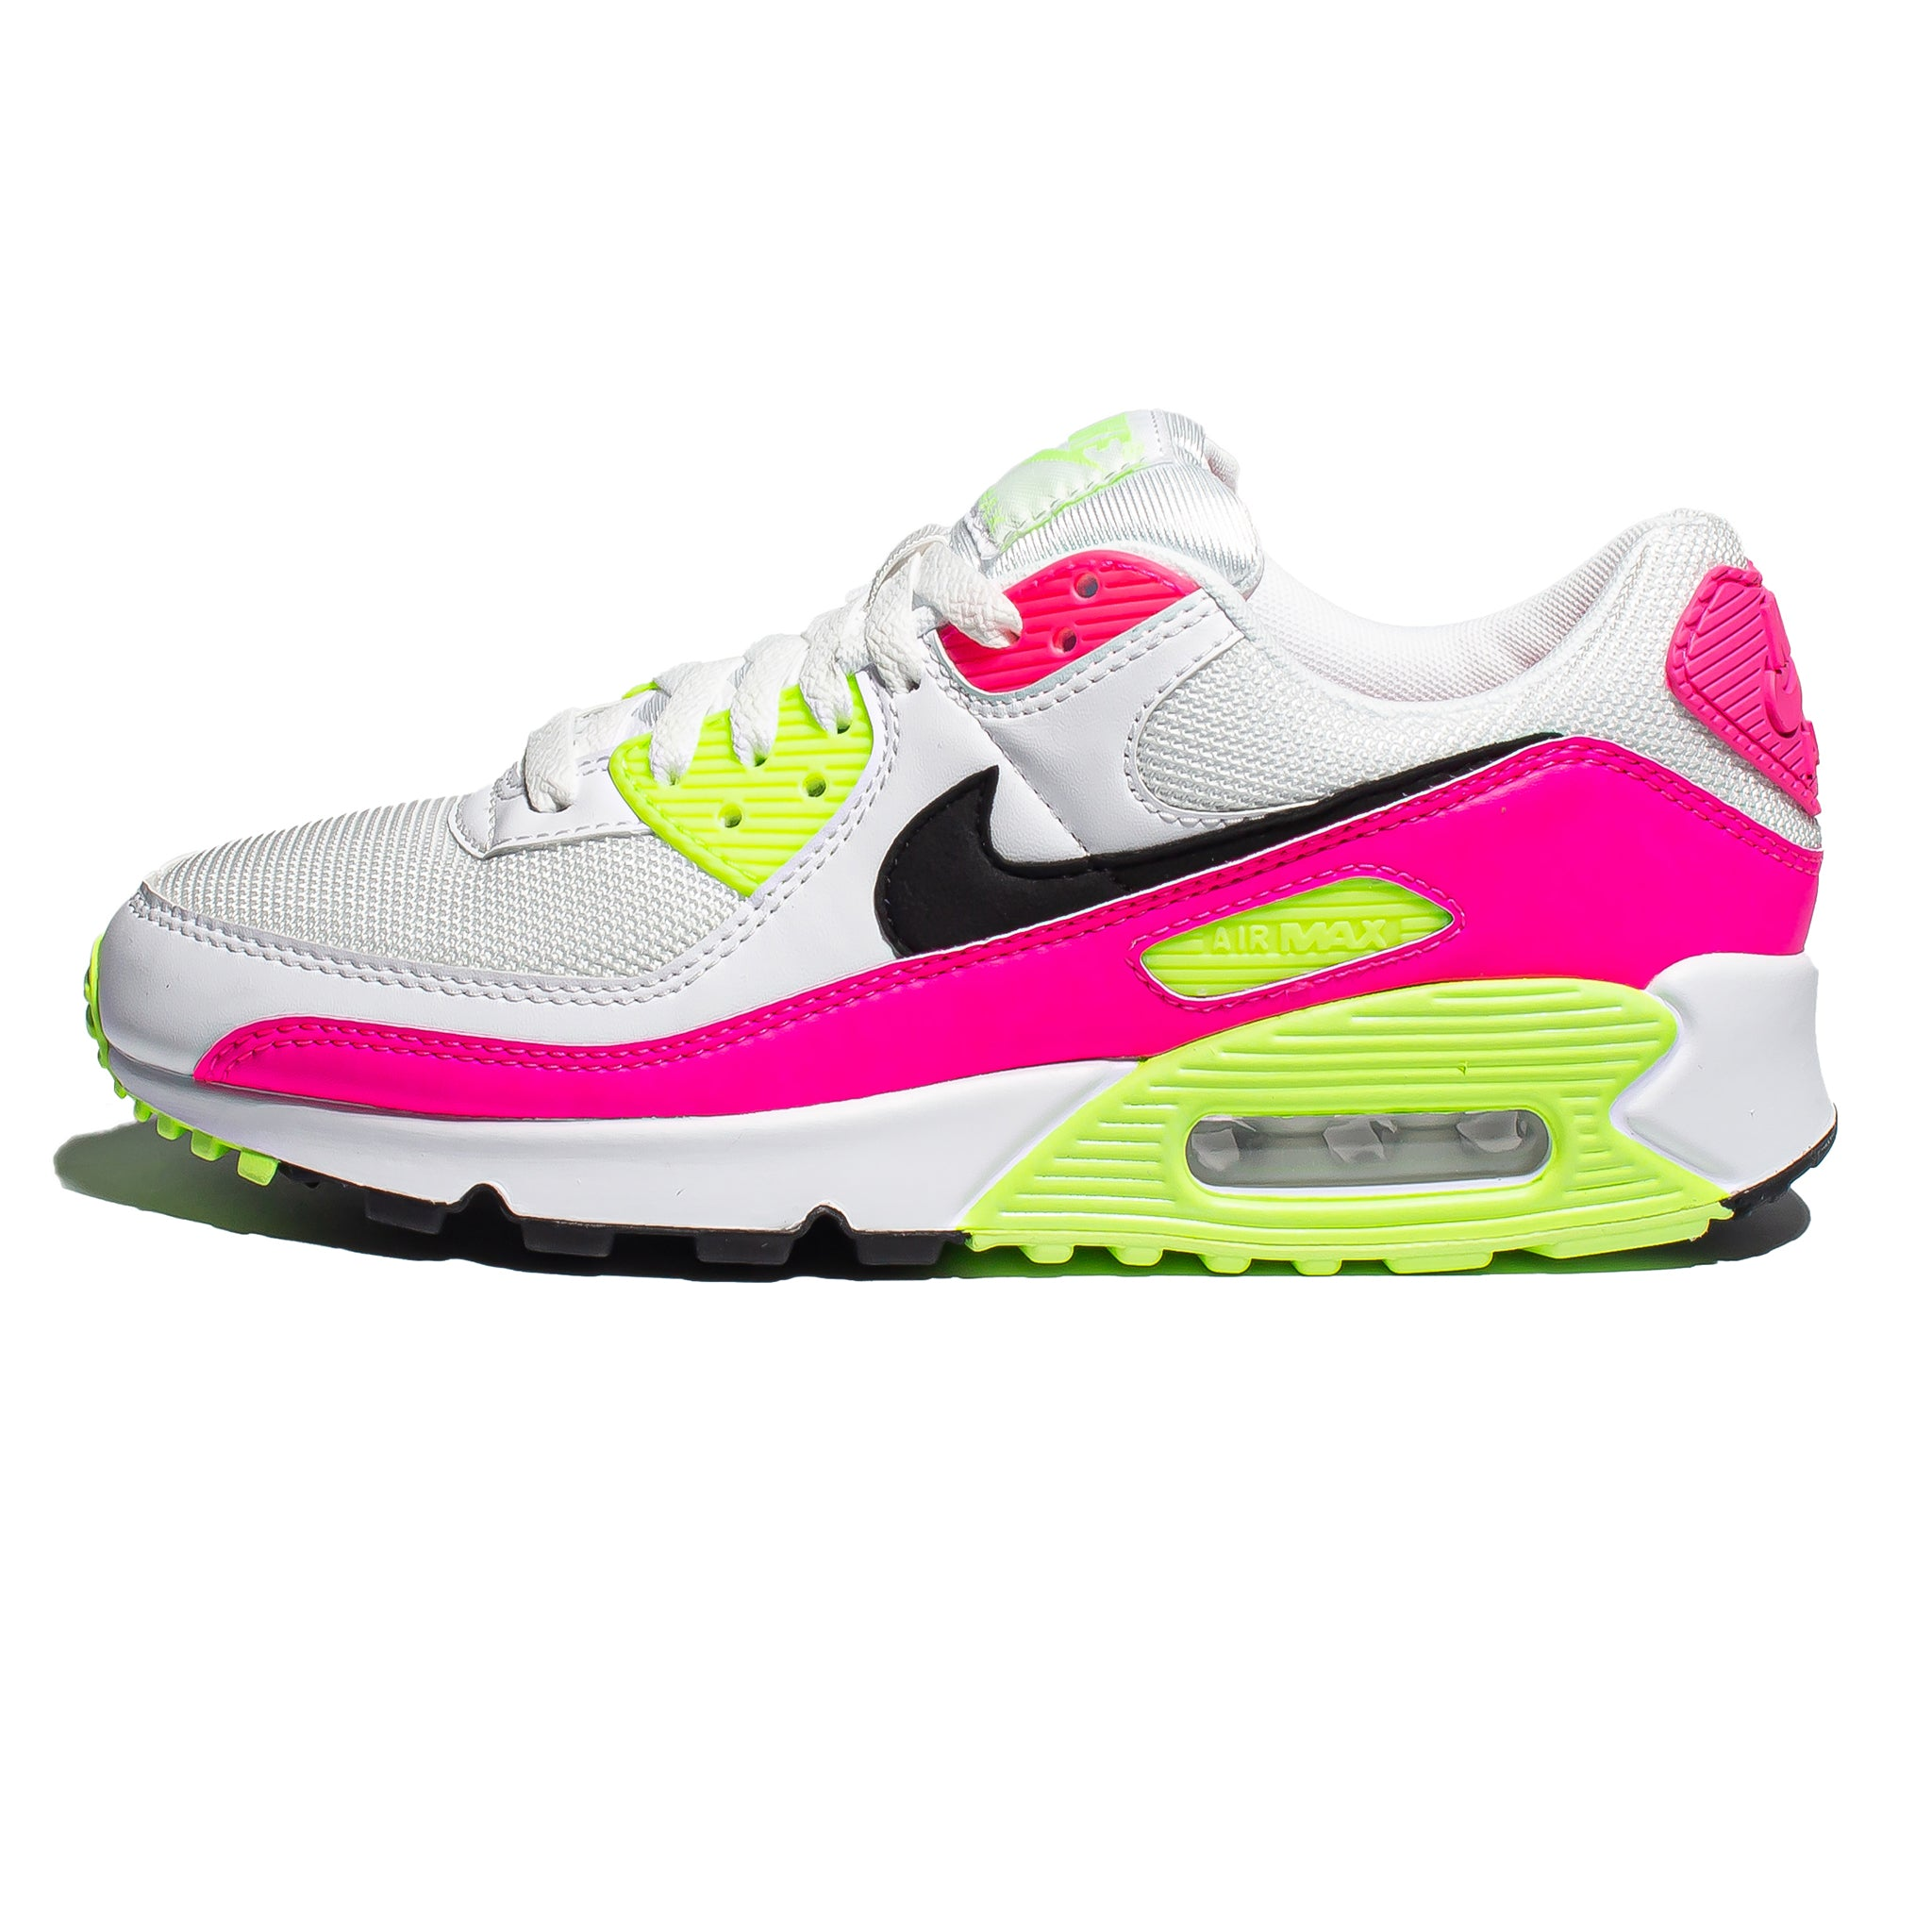 Nike Air Max 90 'Watermelon'